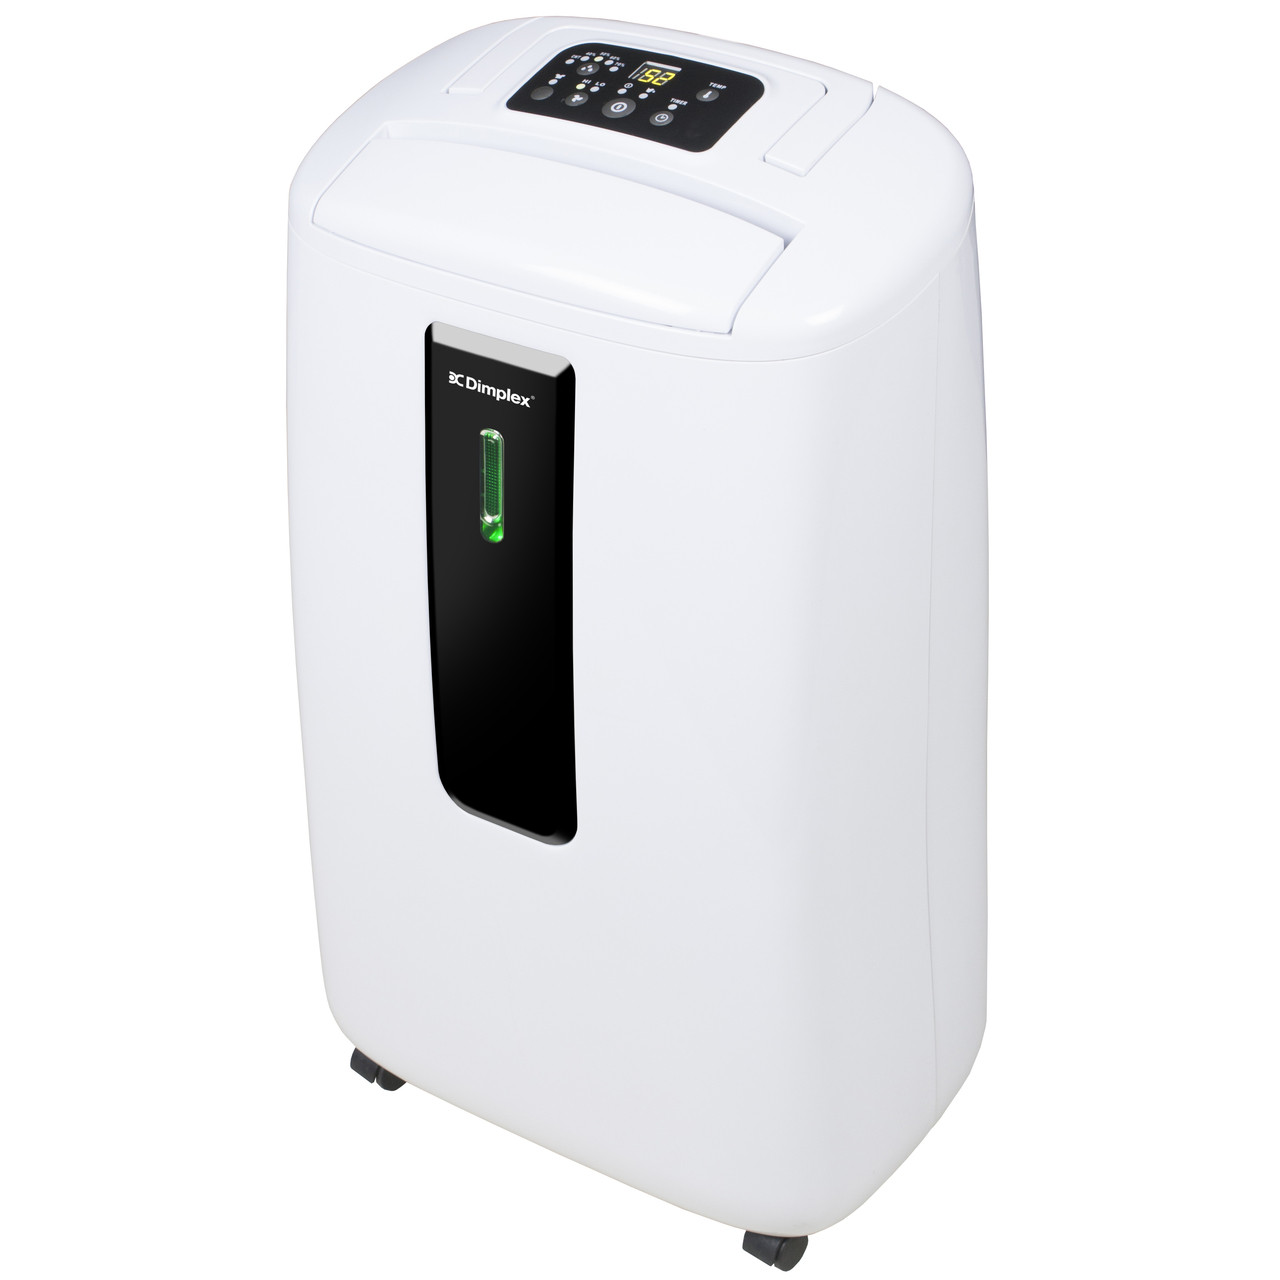 16 Litre Smart Dehumidifier